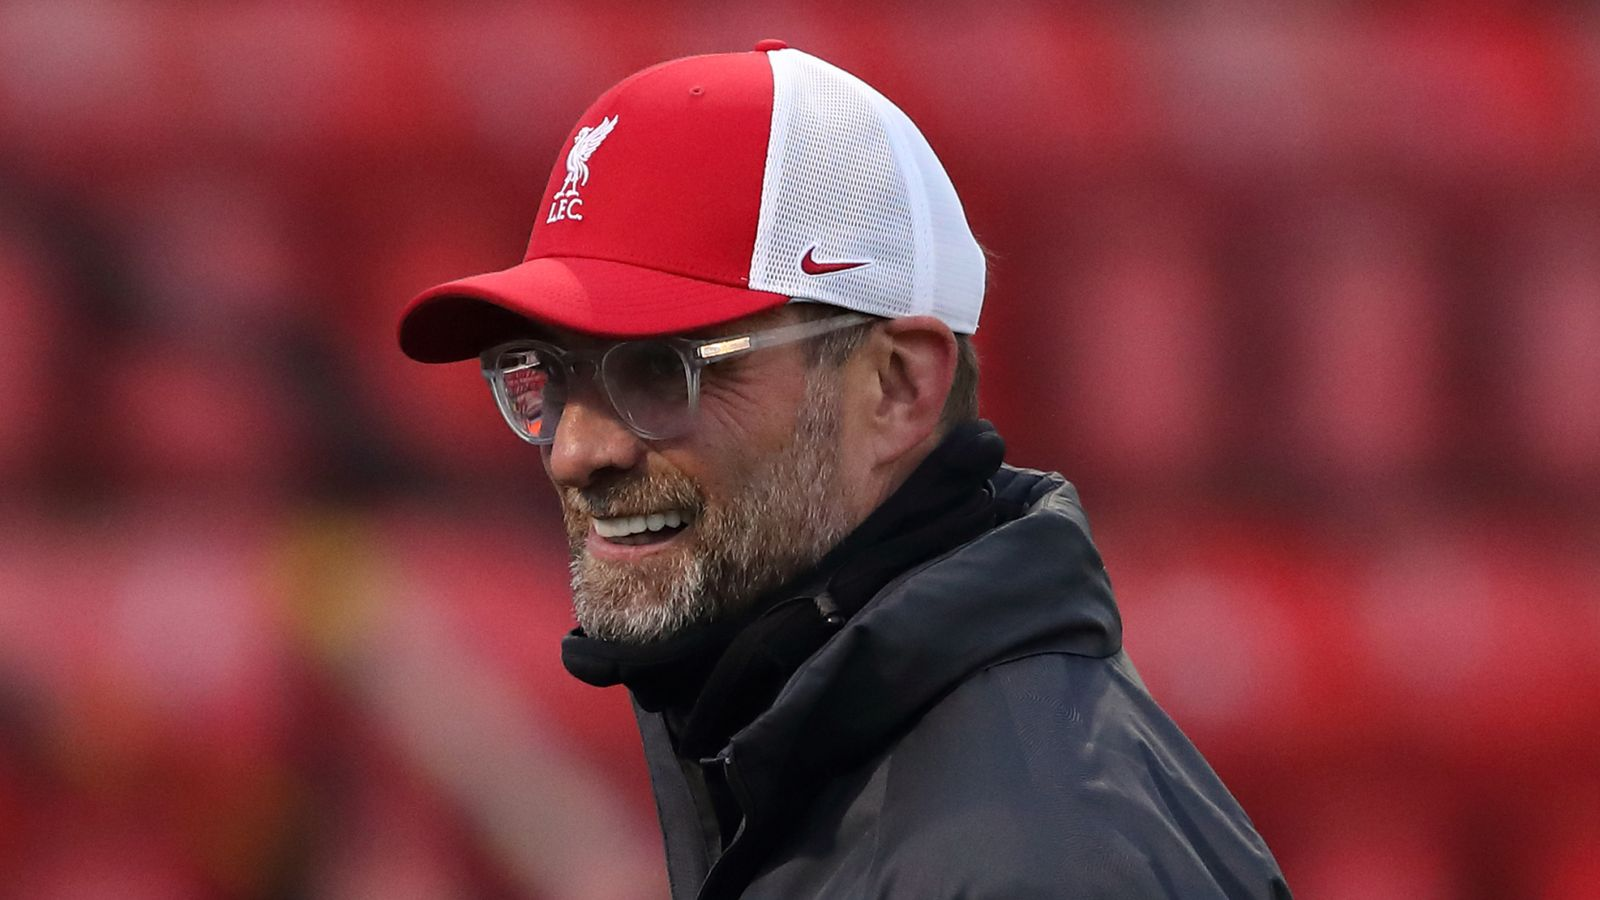 Jurgen Klopp Liverpool S Impressive Home Run Has No Secret Recipe Football News Sky Sports